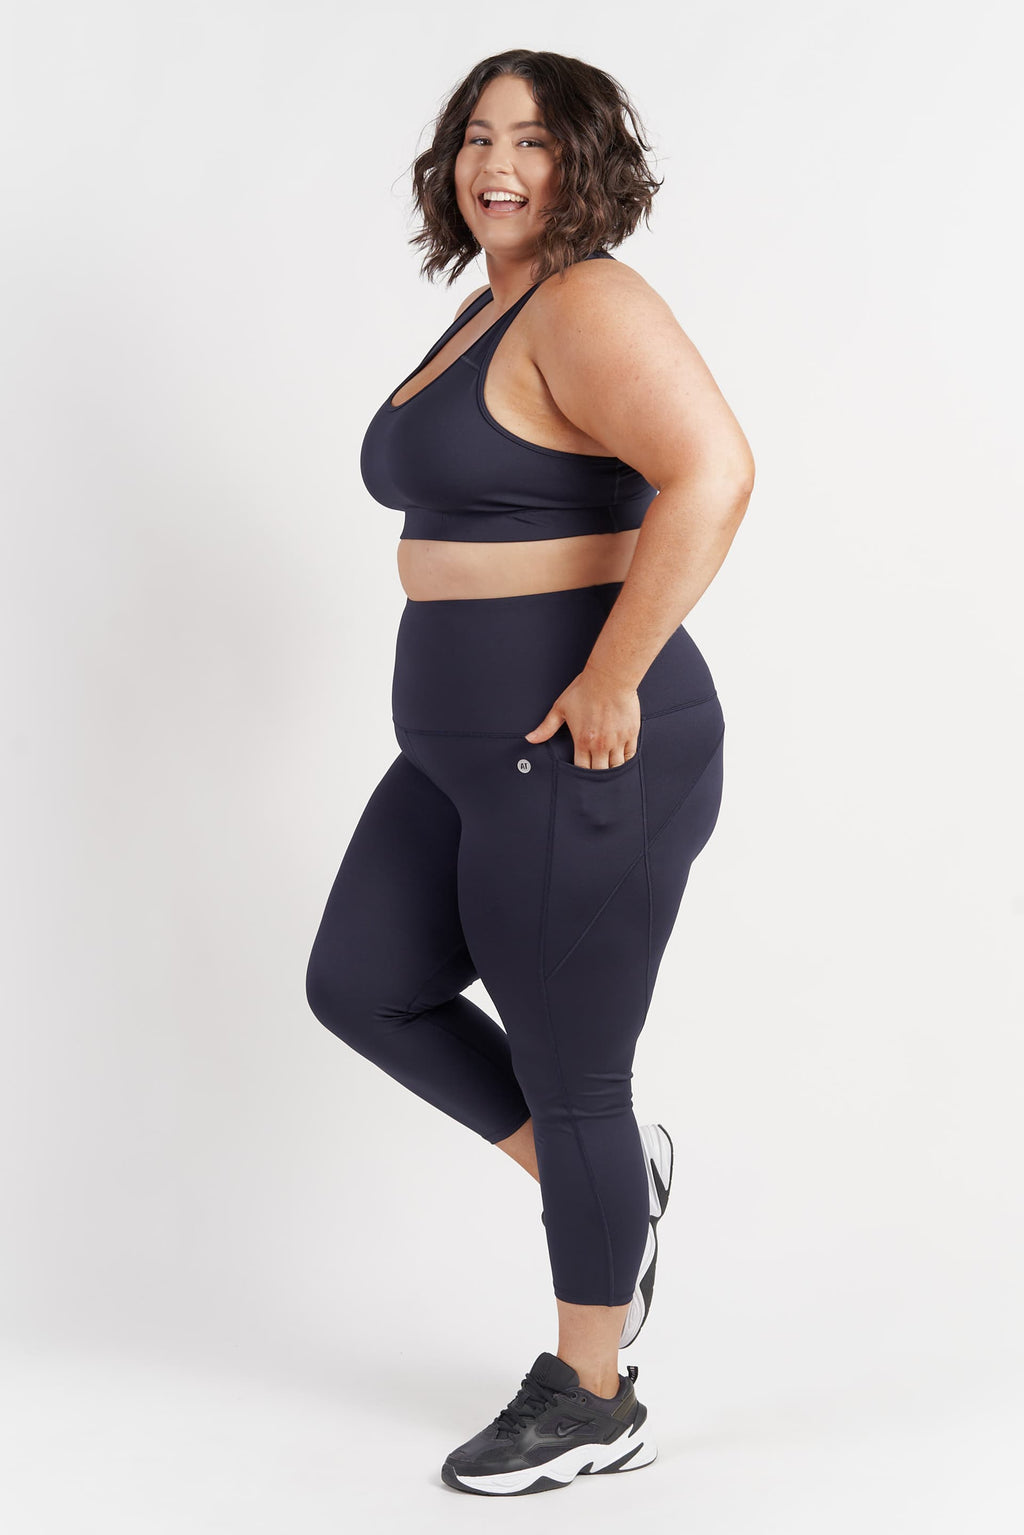 78length-gym-tights-midnight-plussize-side?id=15582885478465